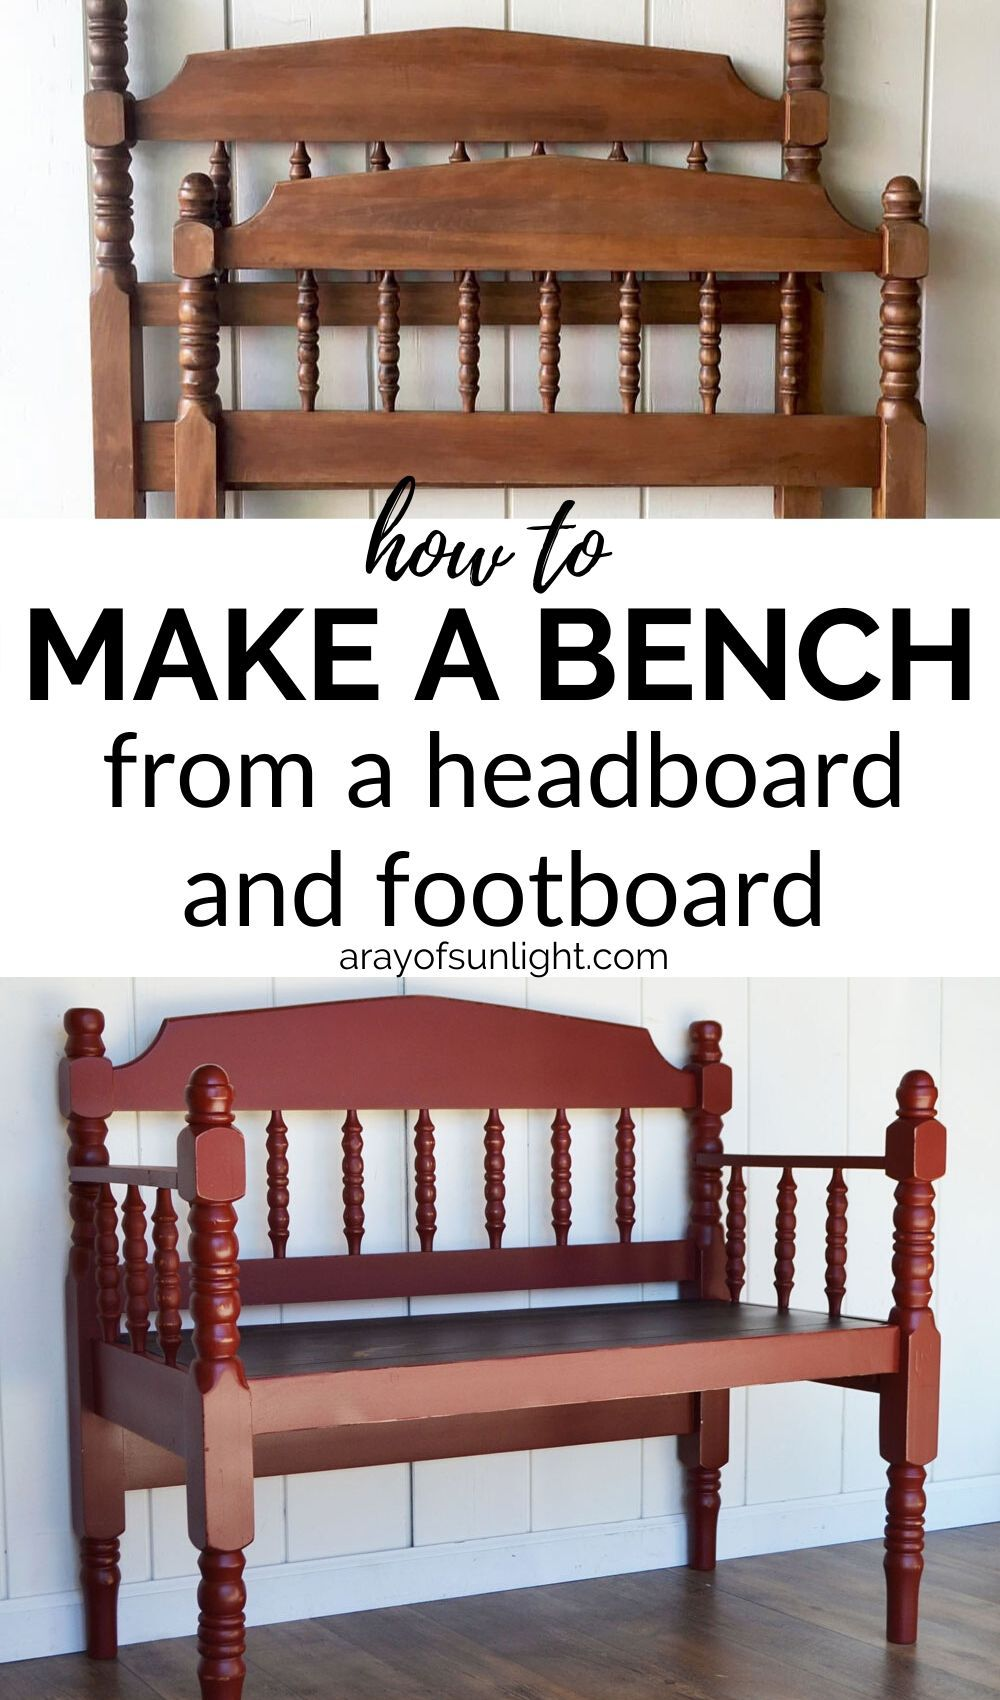 How to Make a Bench from a Headboard and Footboard